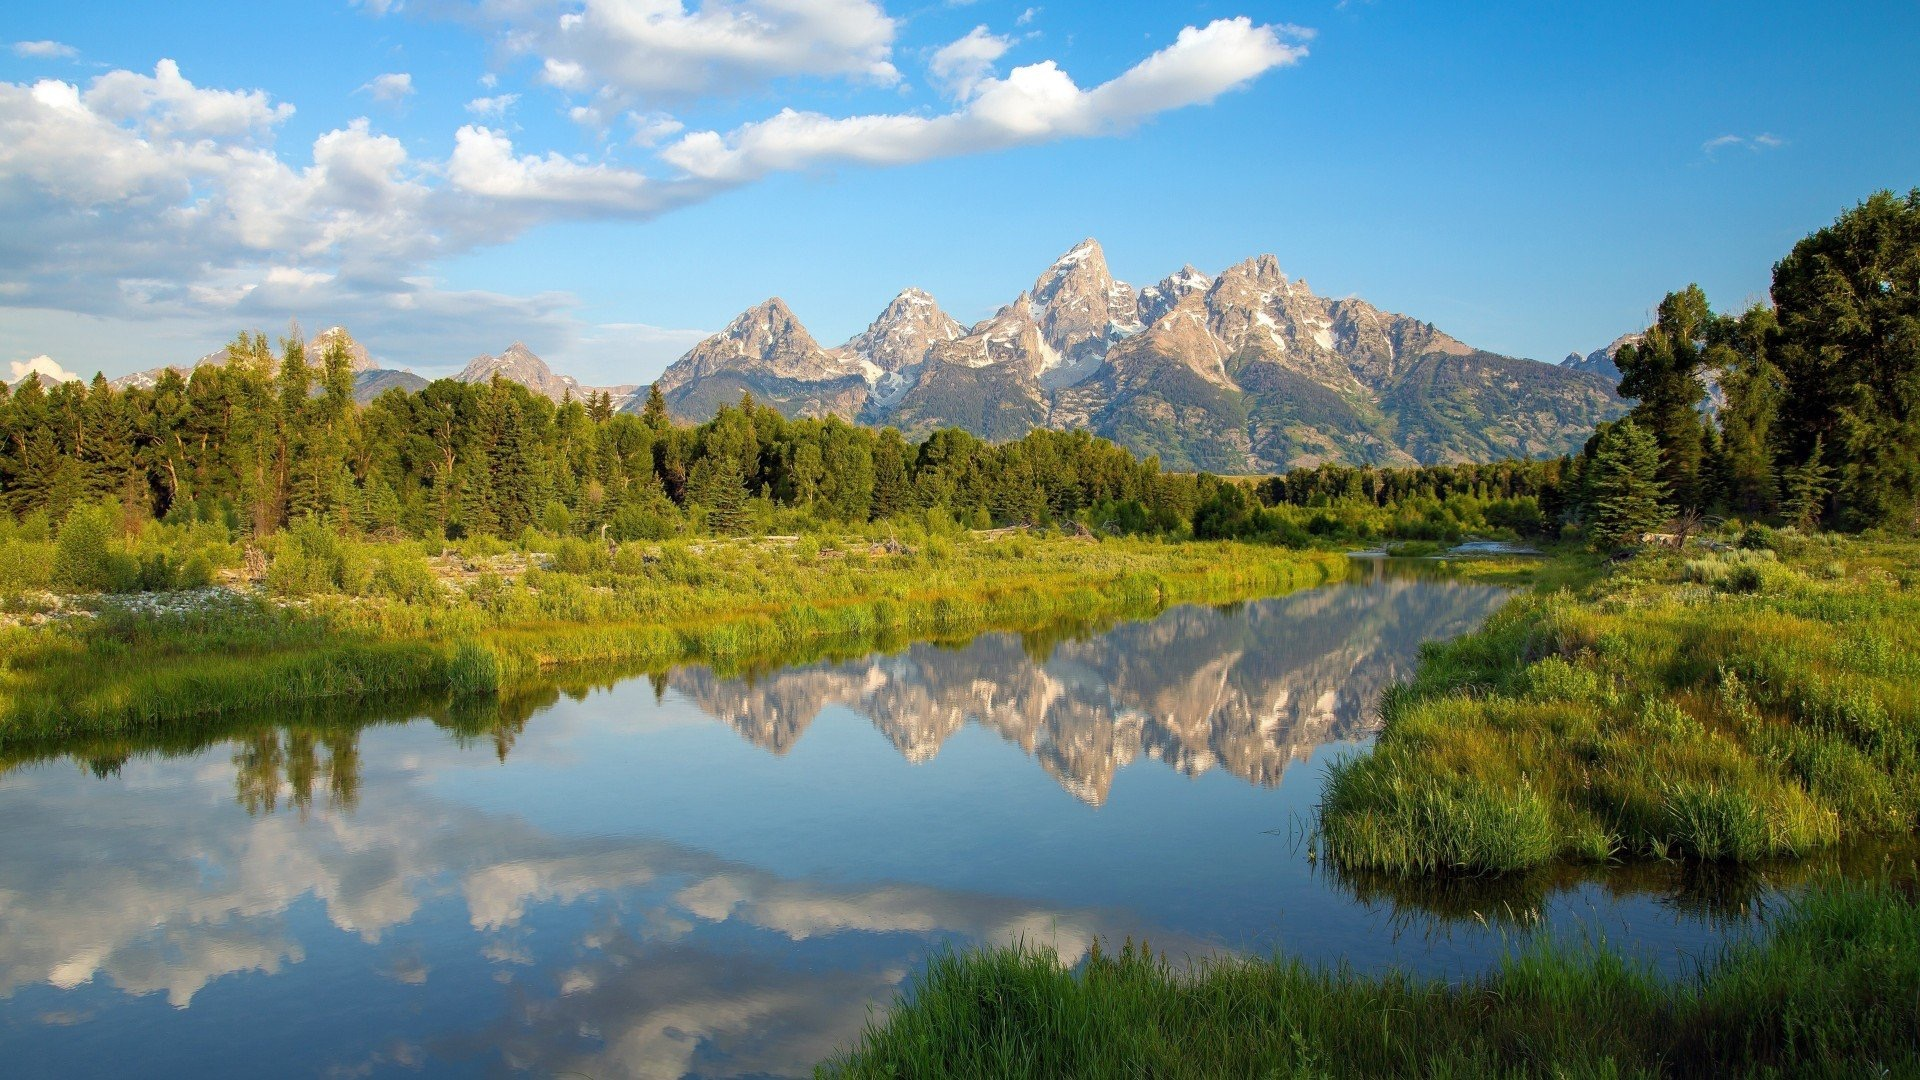 forest-landscape-nature-mountain-united-states-reflections-river-wyoming-reflection-wyoming.jpg